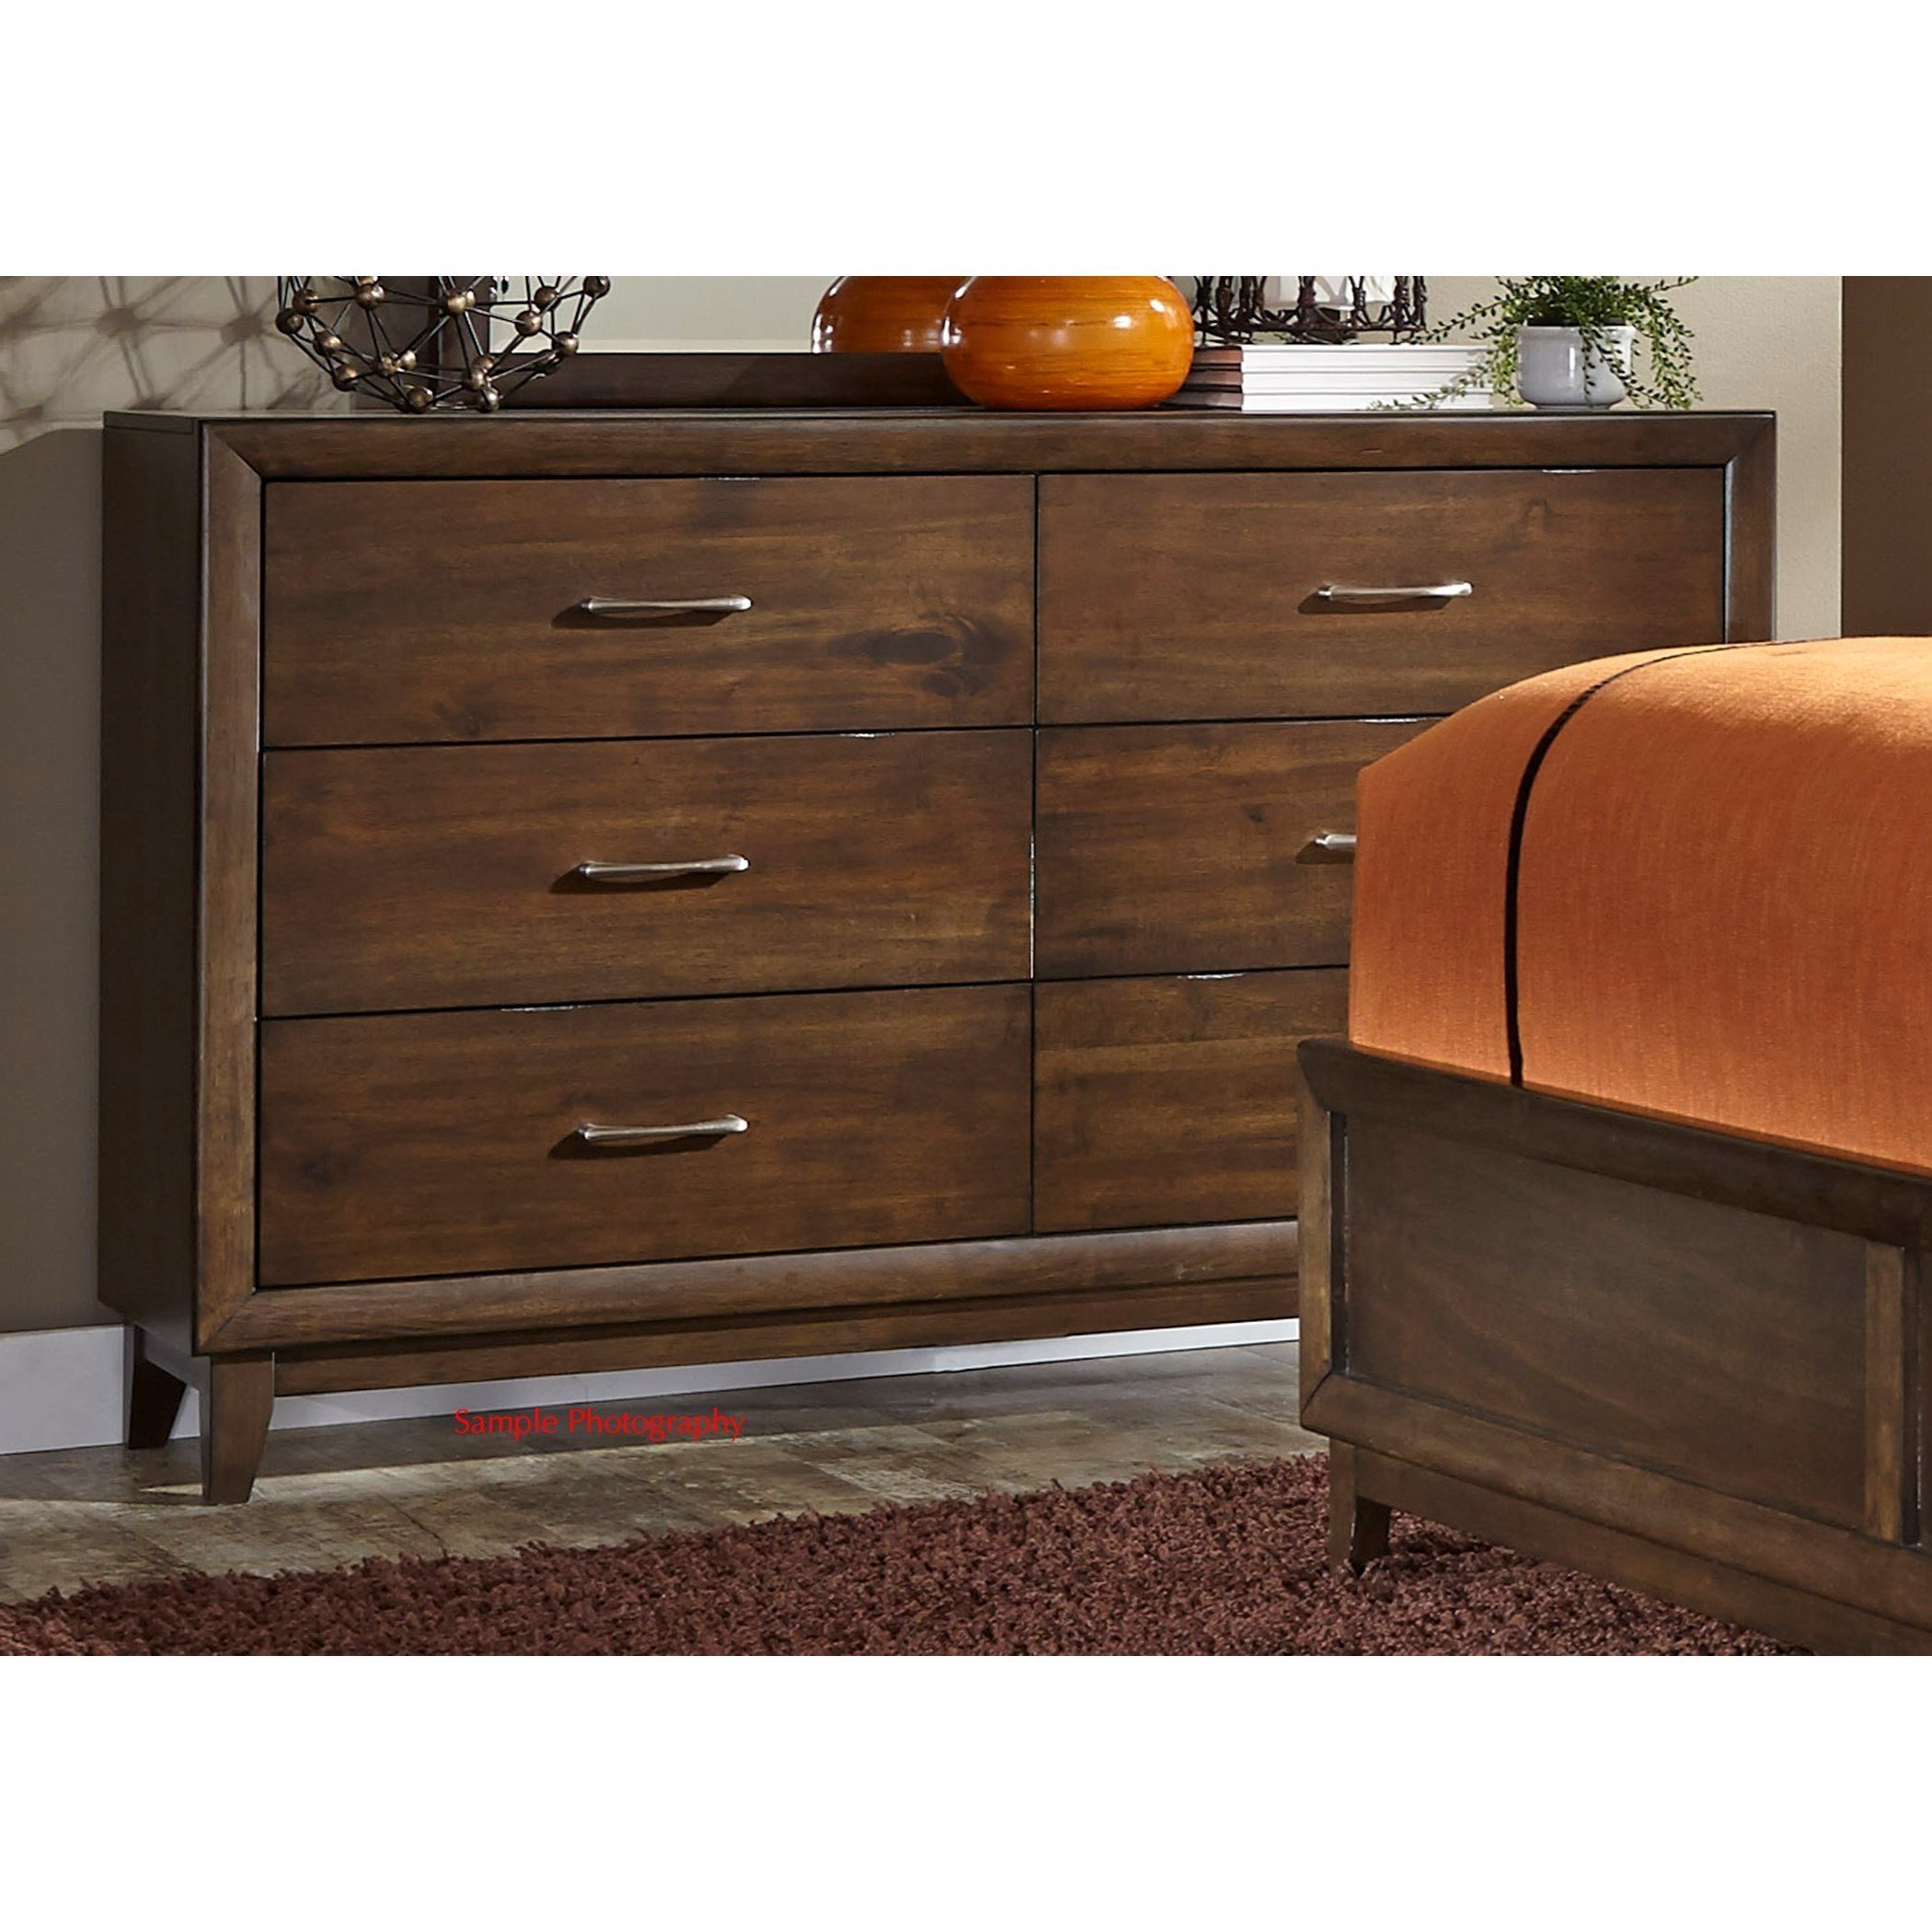 Liberty Furniture Hudson Square Bedroom 6 Drawer Dresser With Felt Lined  Top Drawers   Novello Home Furnishings   Dressers